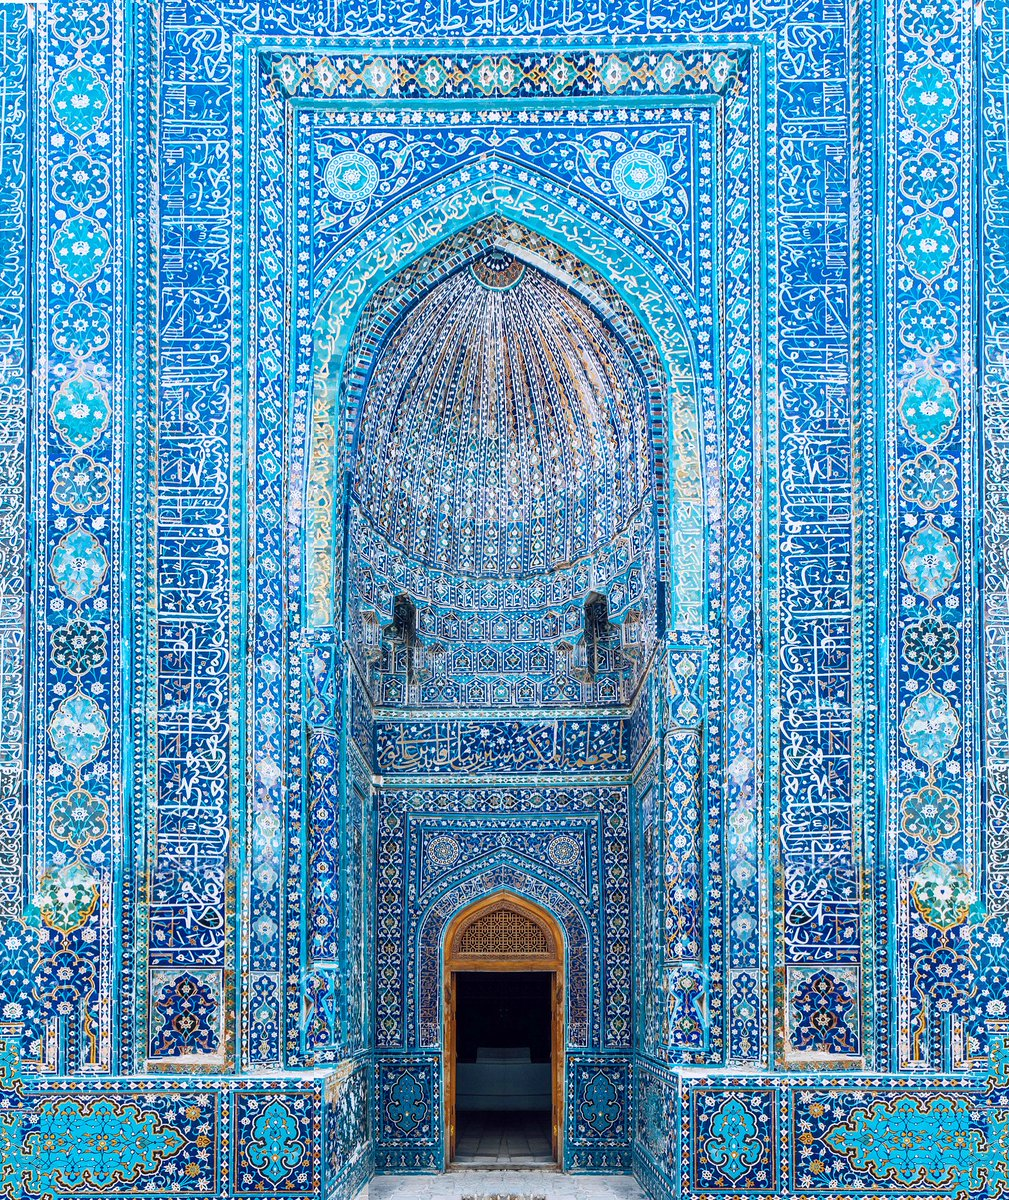 "From our Instagram this week, we shared this incredible architectural piece, shot by photographer Henry Wu in Uzbekistan: ""I've always been fascinated by the Silk Road, a network of trade routes that connected the East and West."" #passionpassport pic.twitter.com/rMRS5mJWVo"